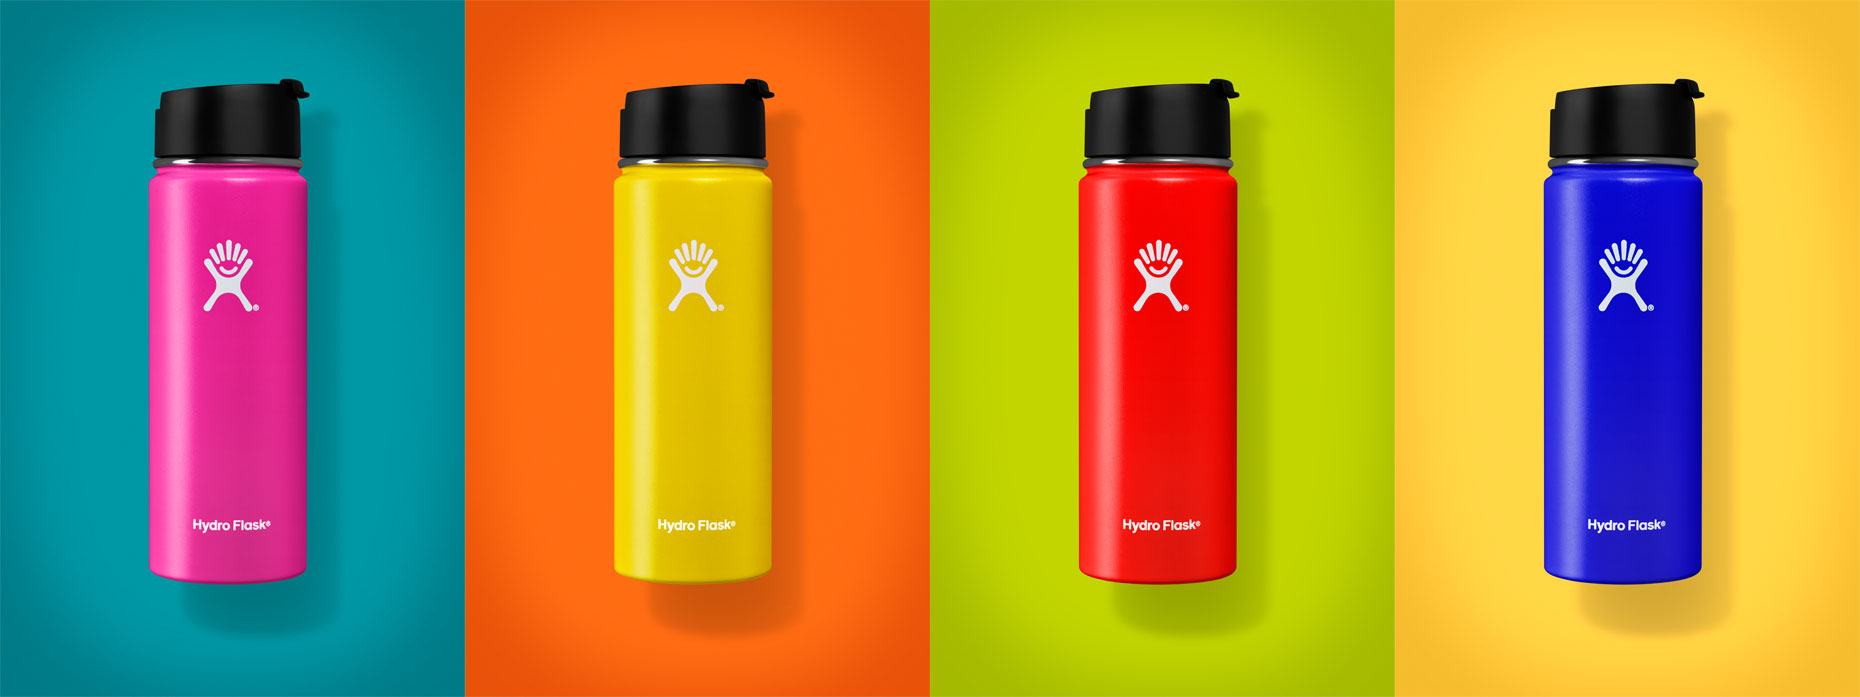 Dan Schrock Product Photographer Still Life Hydro Flask Multi Color Study in Studio Denver